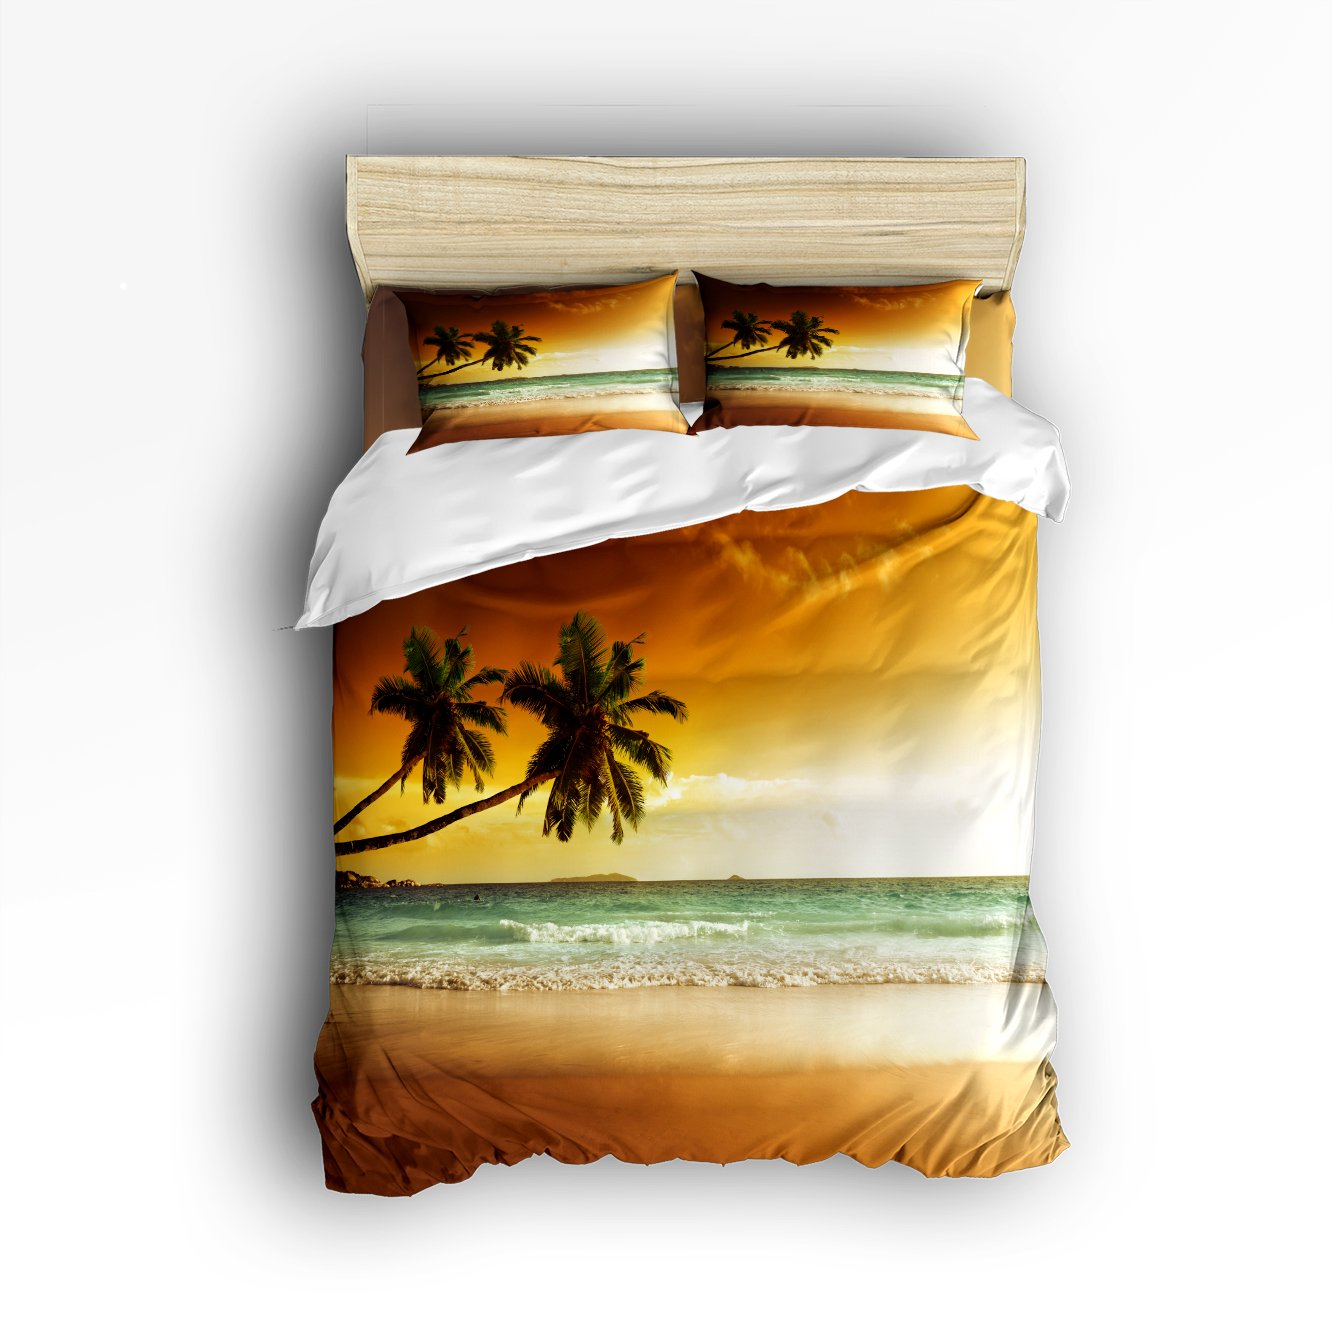 Palm Coconut Trees And Ocean Waves Sunset Home Comforter Cover Bedding Sets Duvet Cover Sets Bedspread for Adult Kids, Flat Sheet, Shams Set 4 Pieces 4 Pcs Twin Size for Kids Teenage Teens